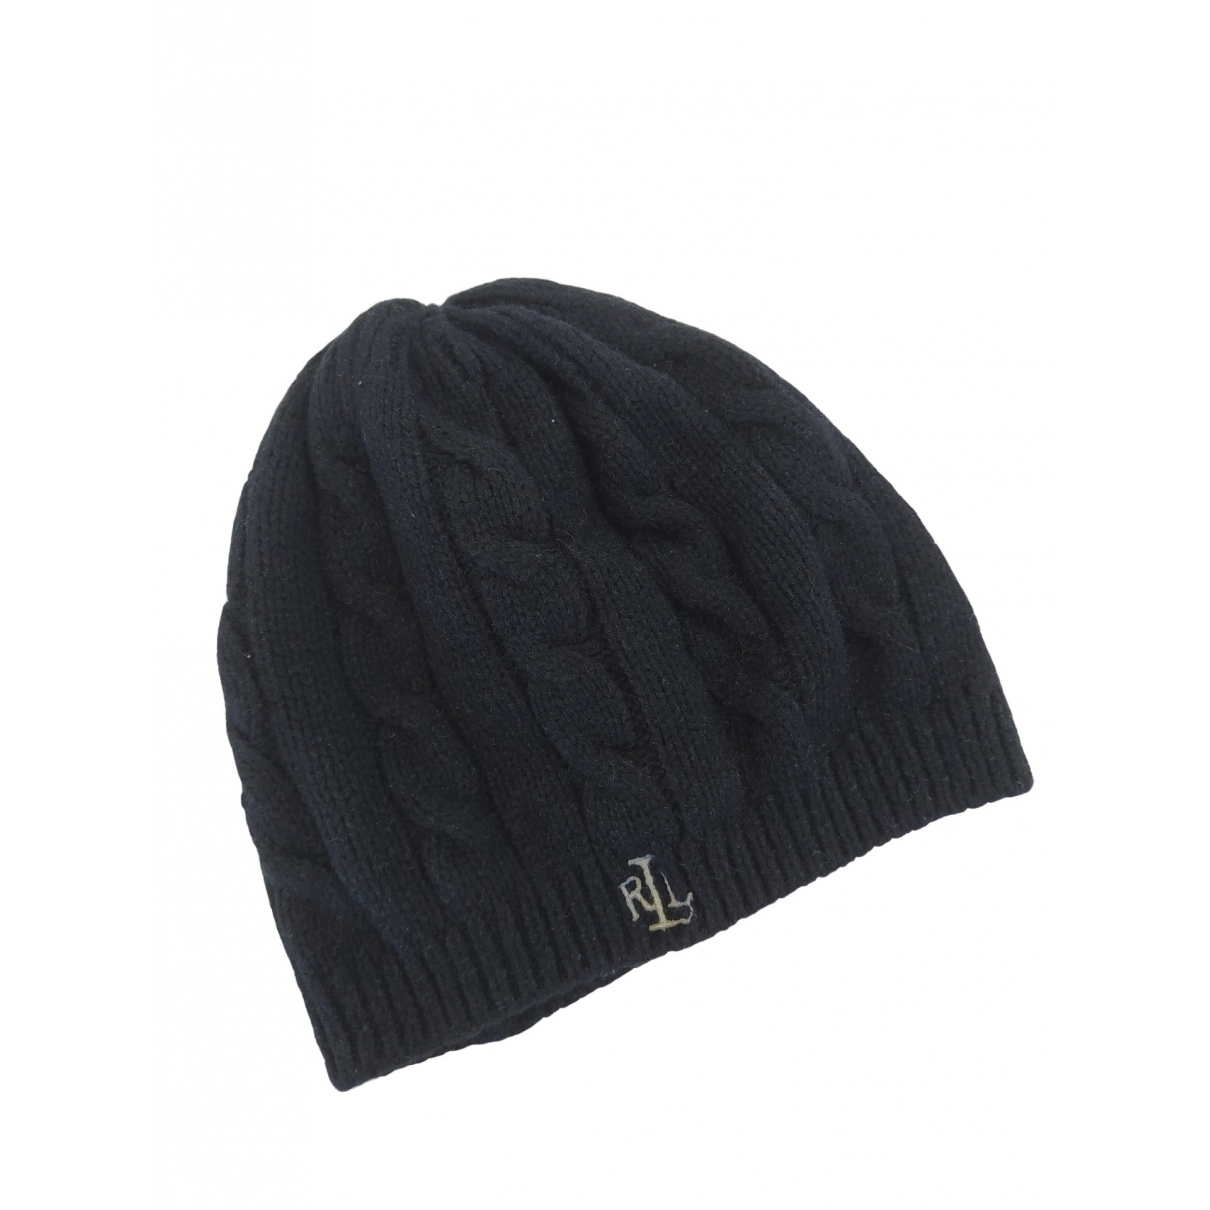 Lauren Ralph Lauren \N Black Wool hat for Women M International